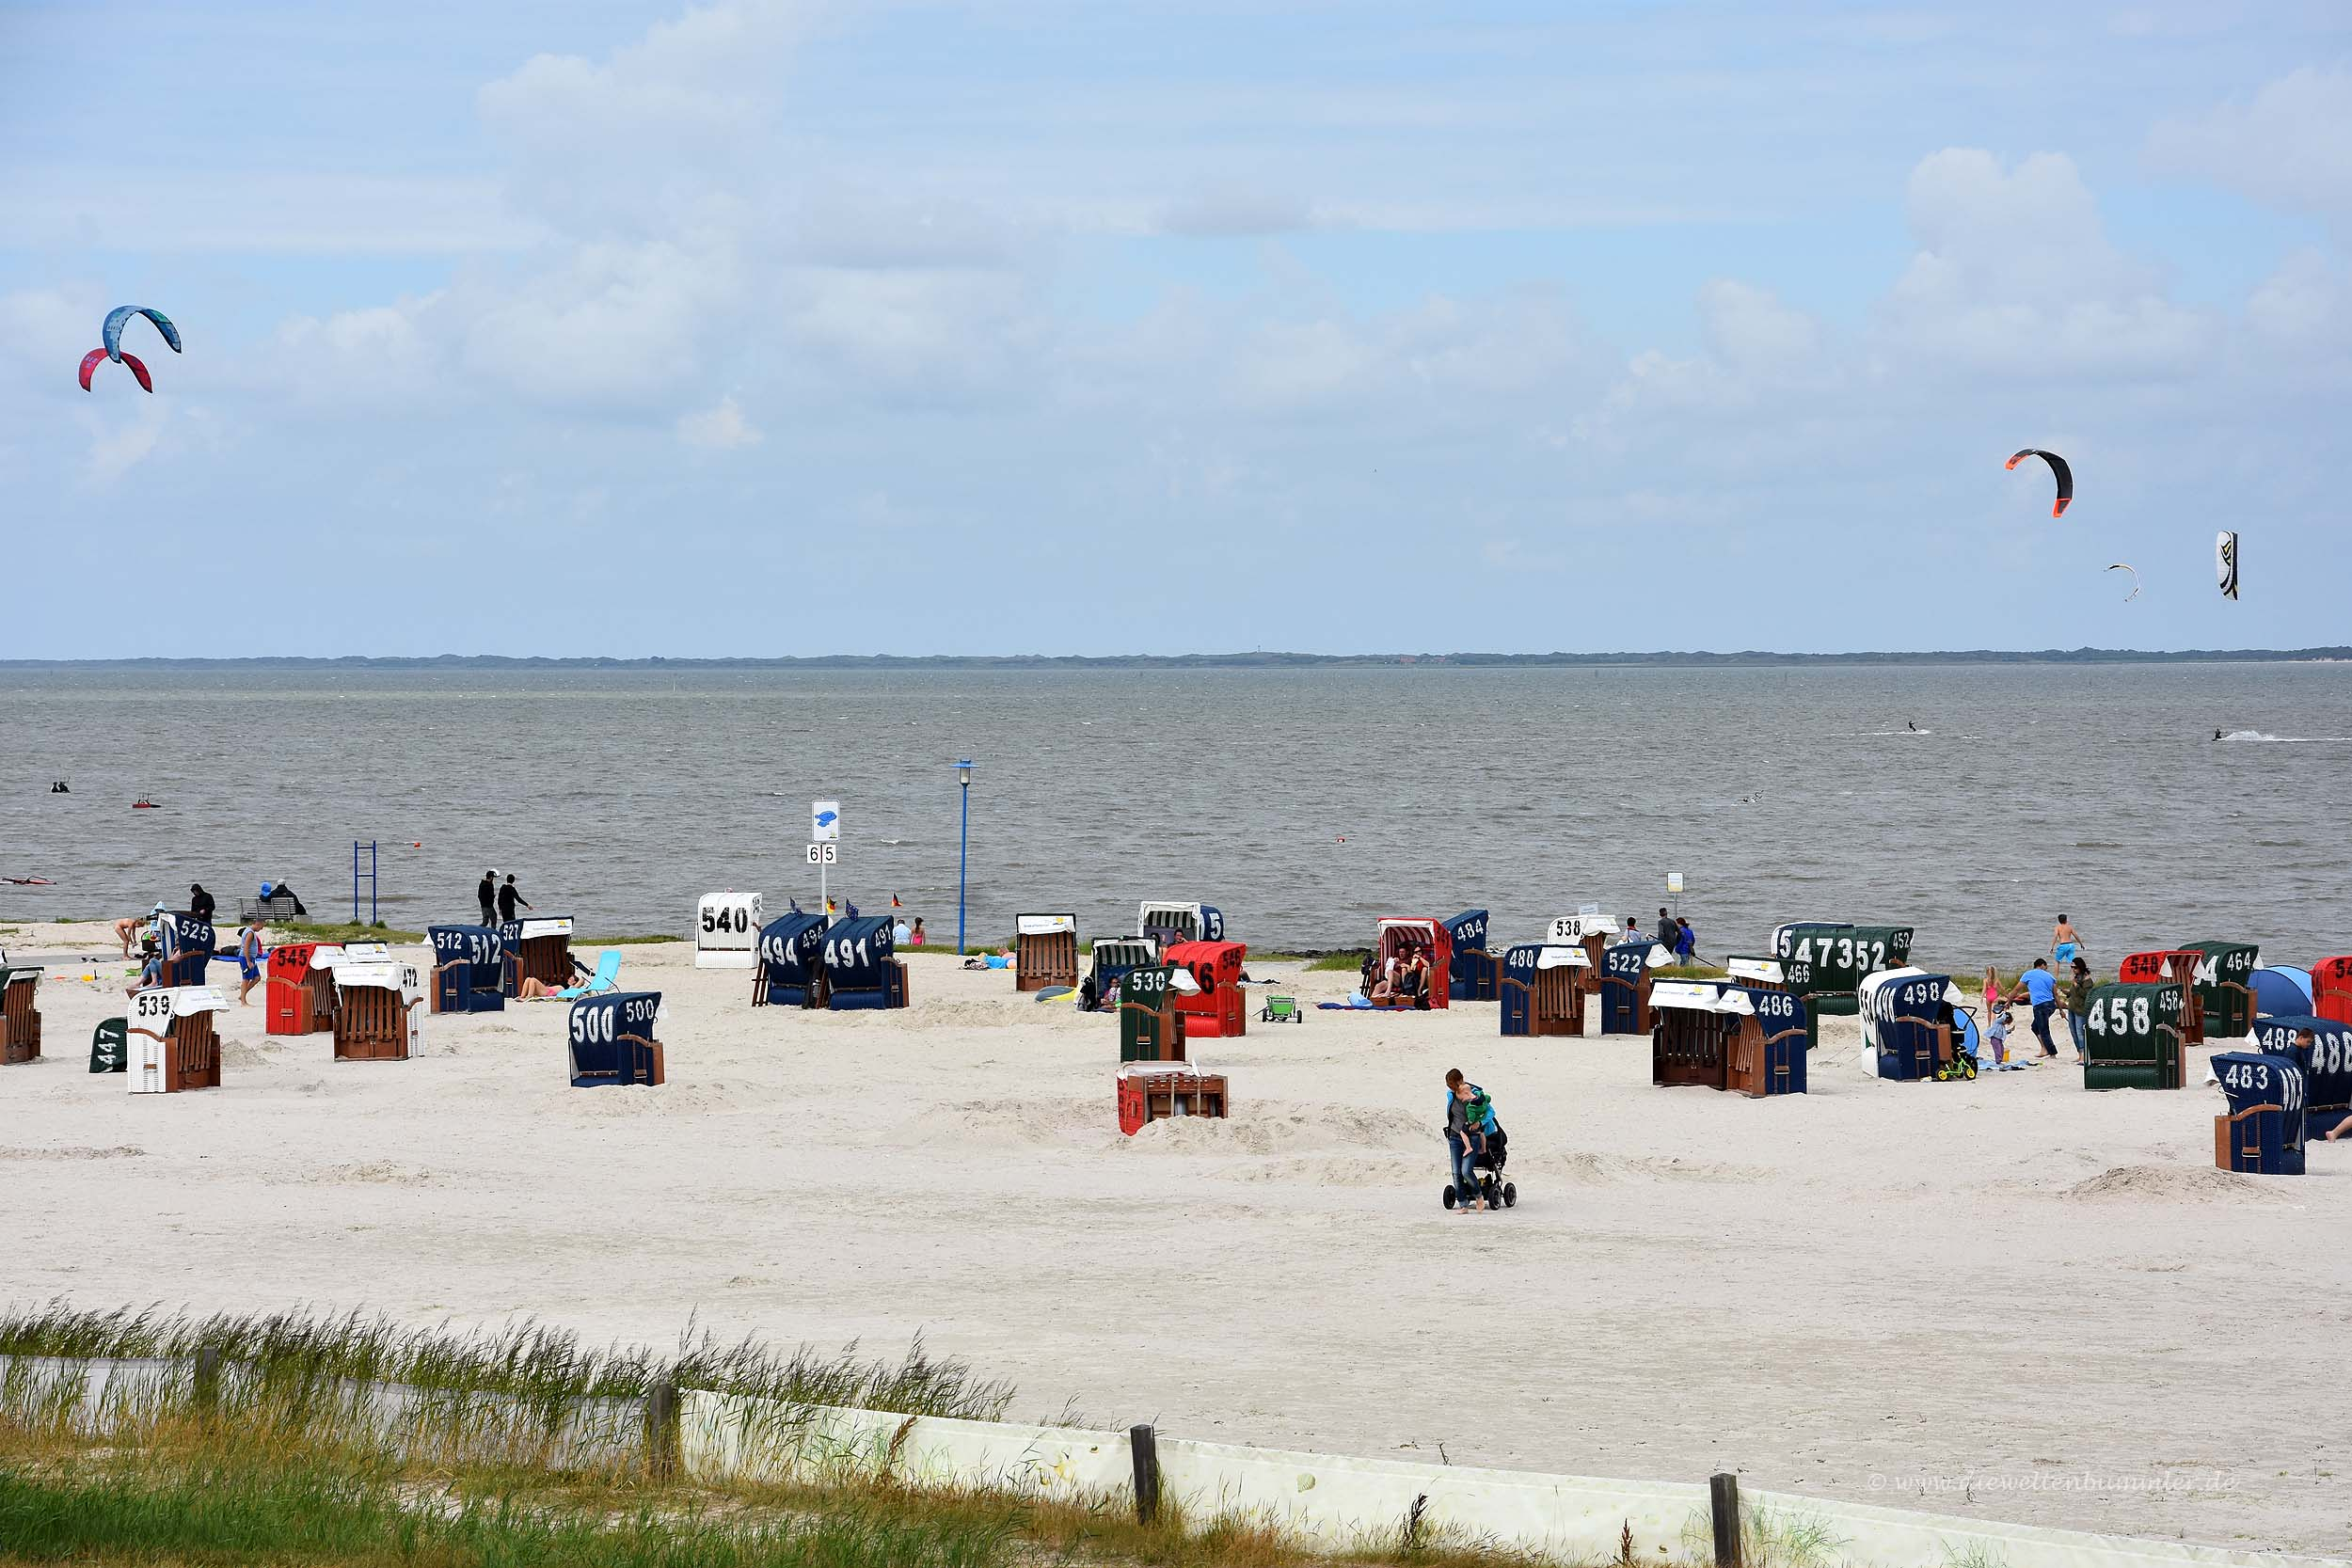 Strand in Neuharlingersiel